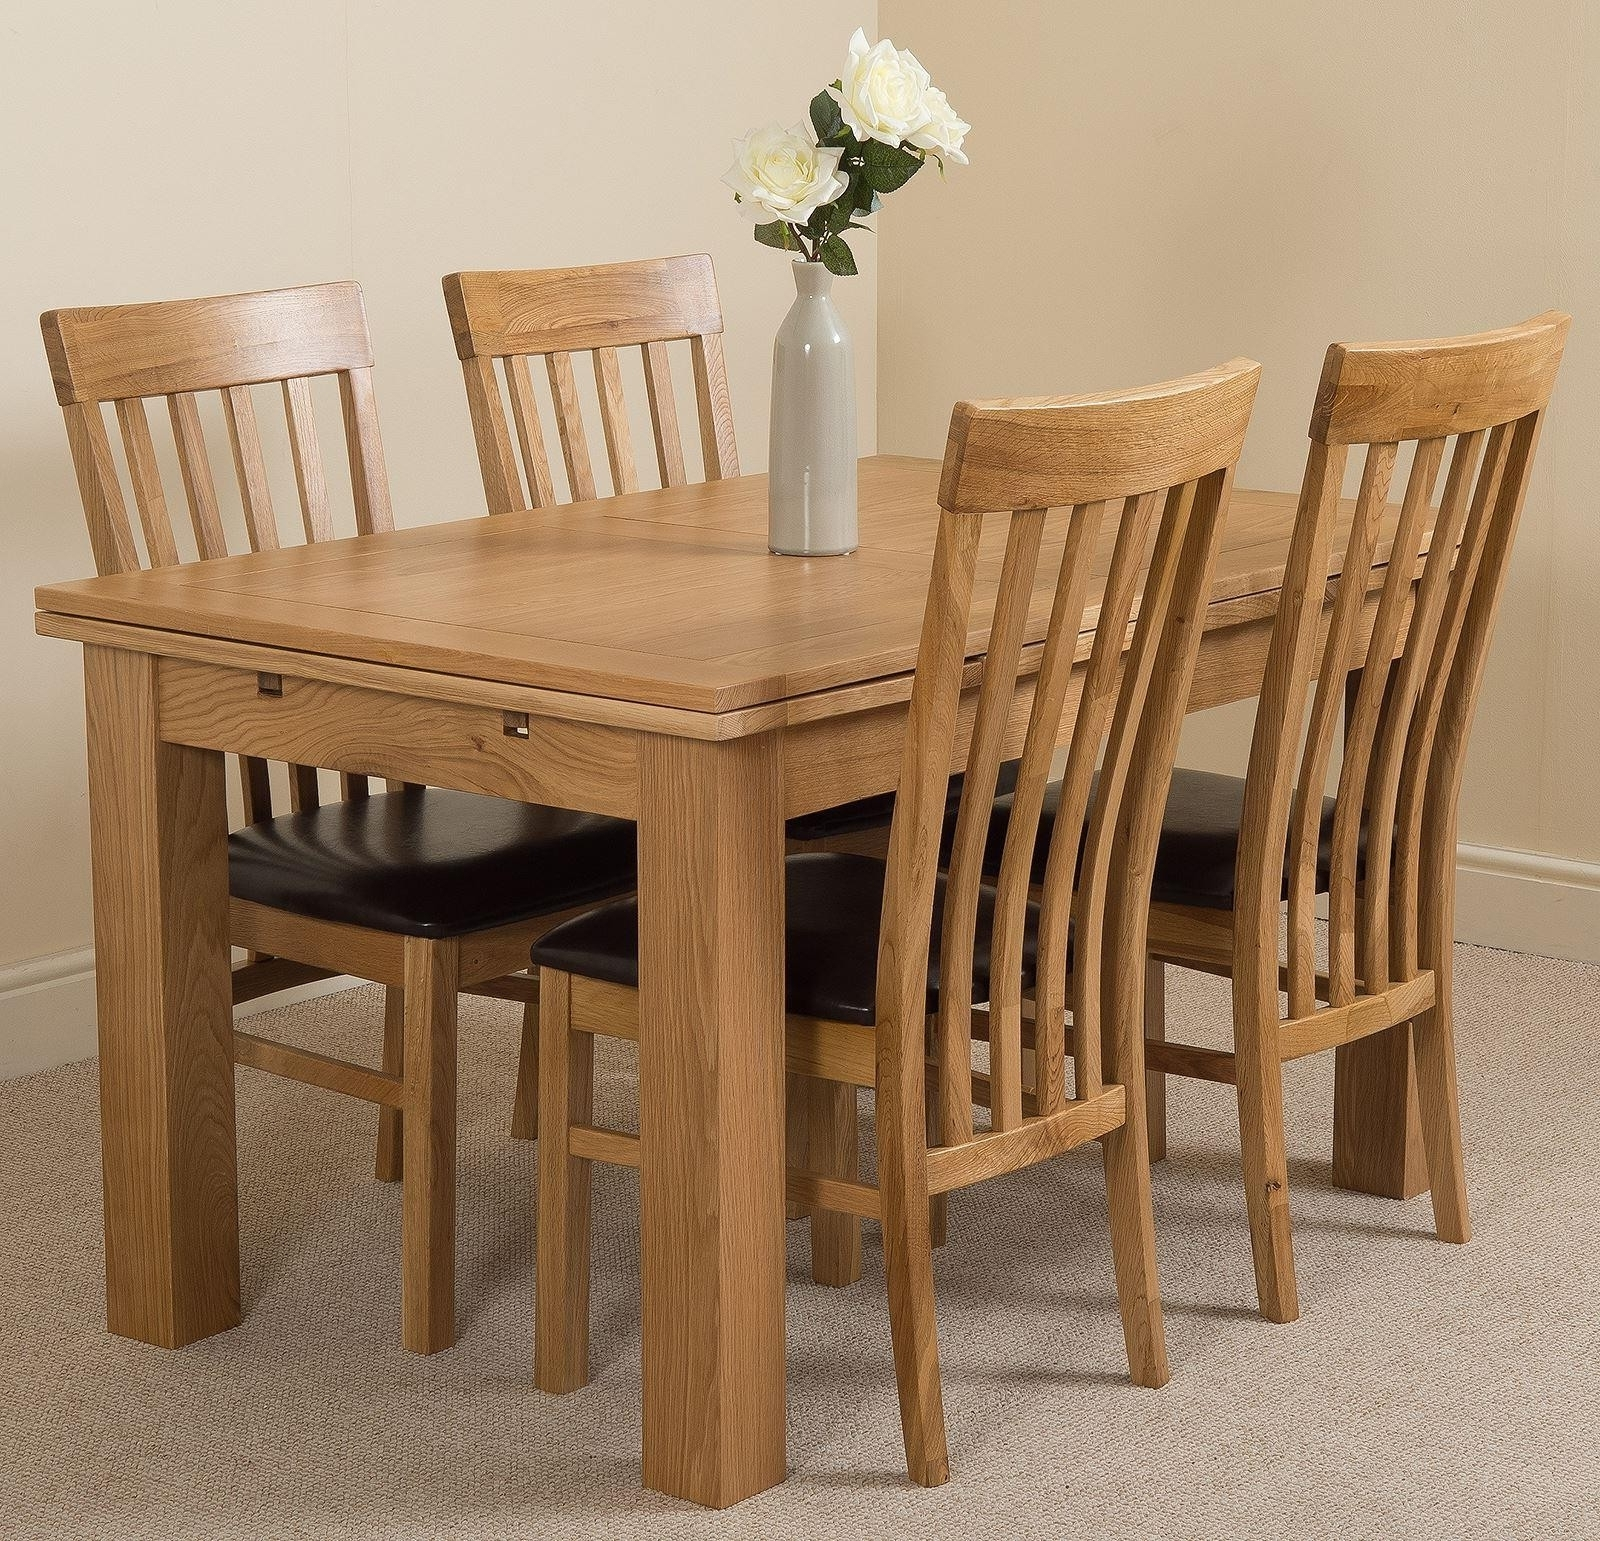 Fashionable Extendable Oak Dining Tables And Chairs Regarding Richmond Oak Small Dining Set 4 Harvard Chairs (View 10 of 25)